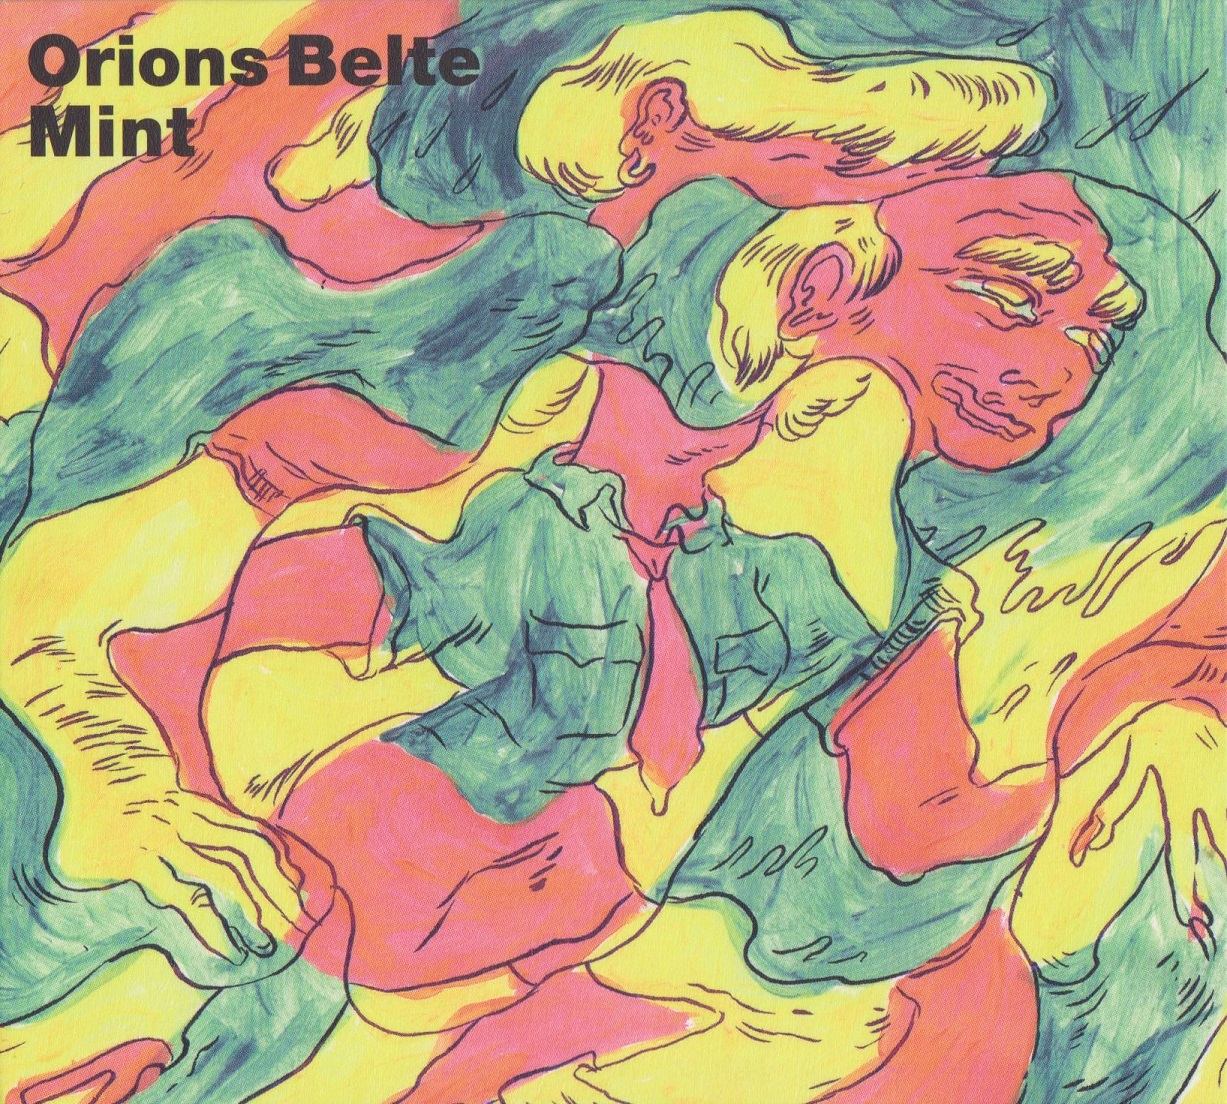 Orions Belte - 'Mint' Album Artwork © Steph Hope